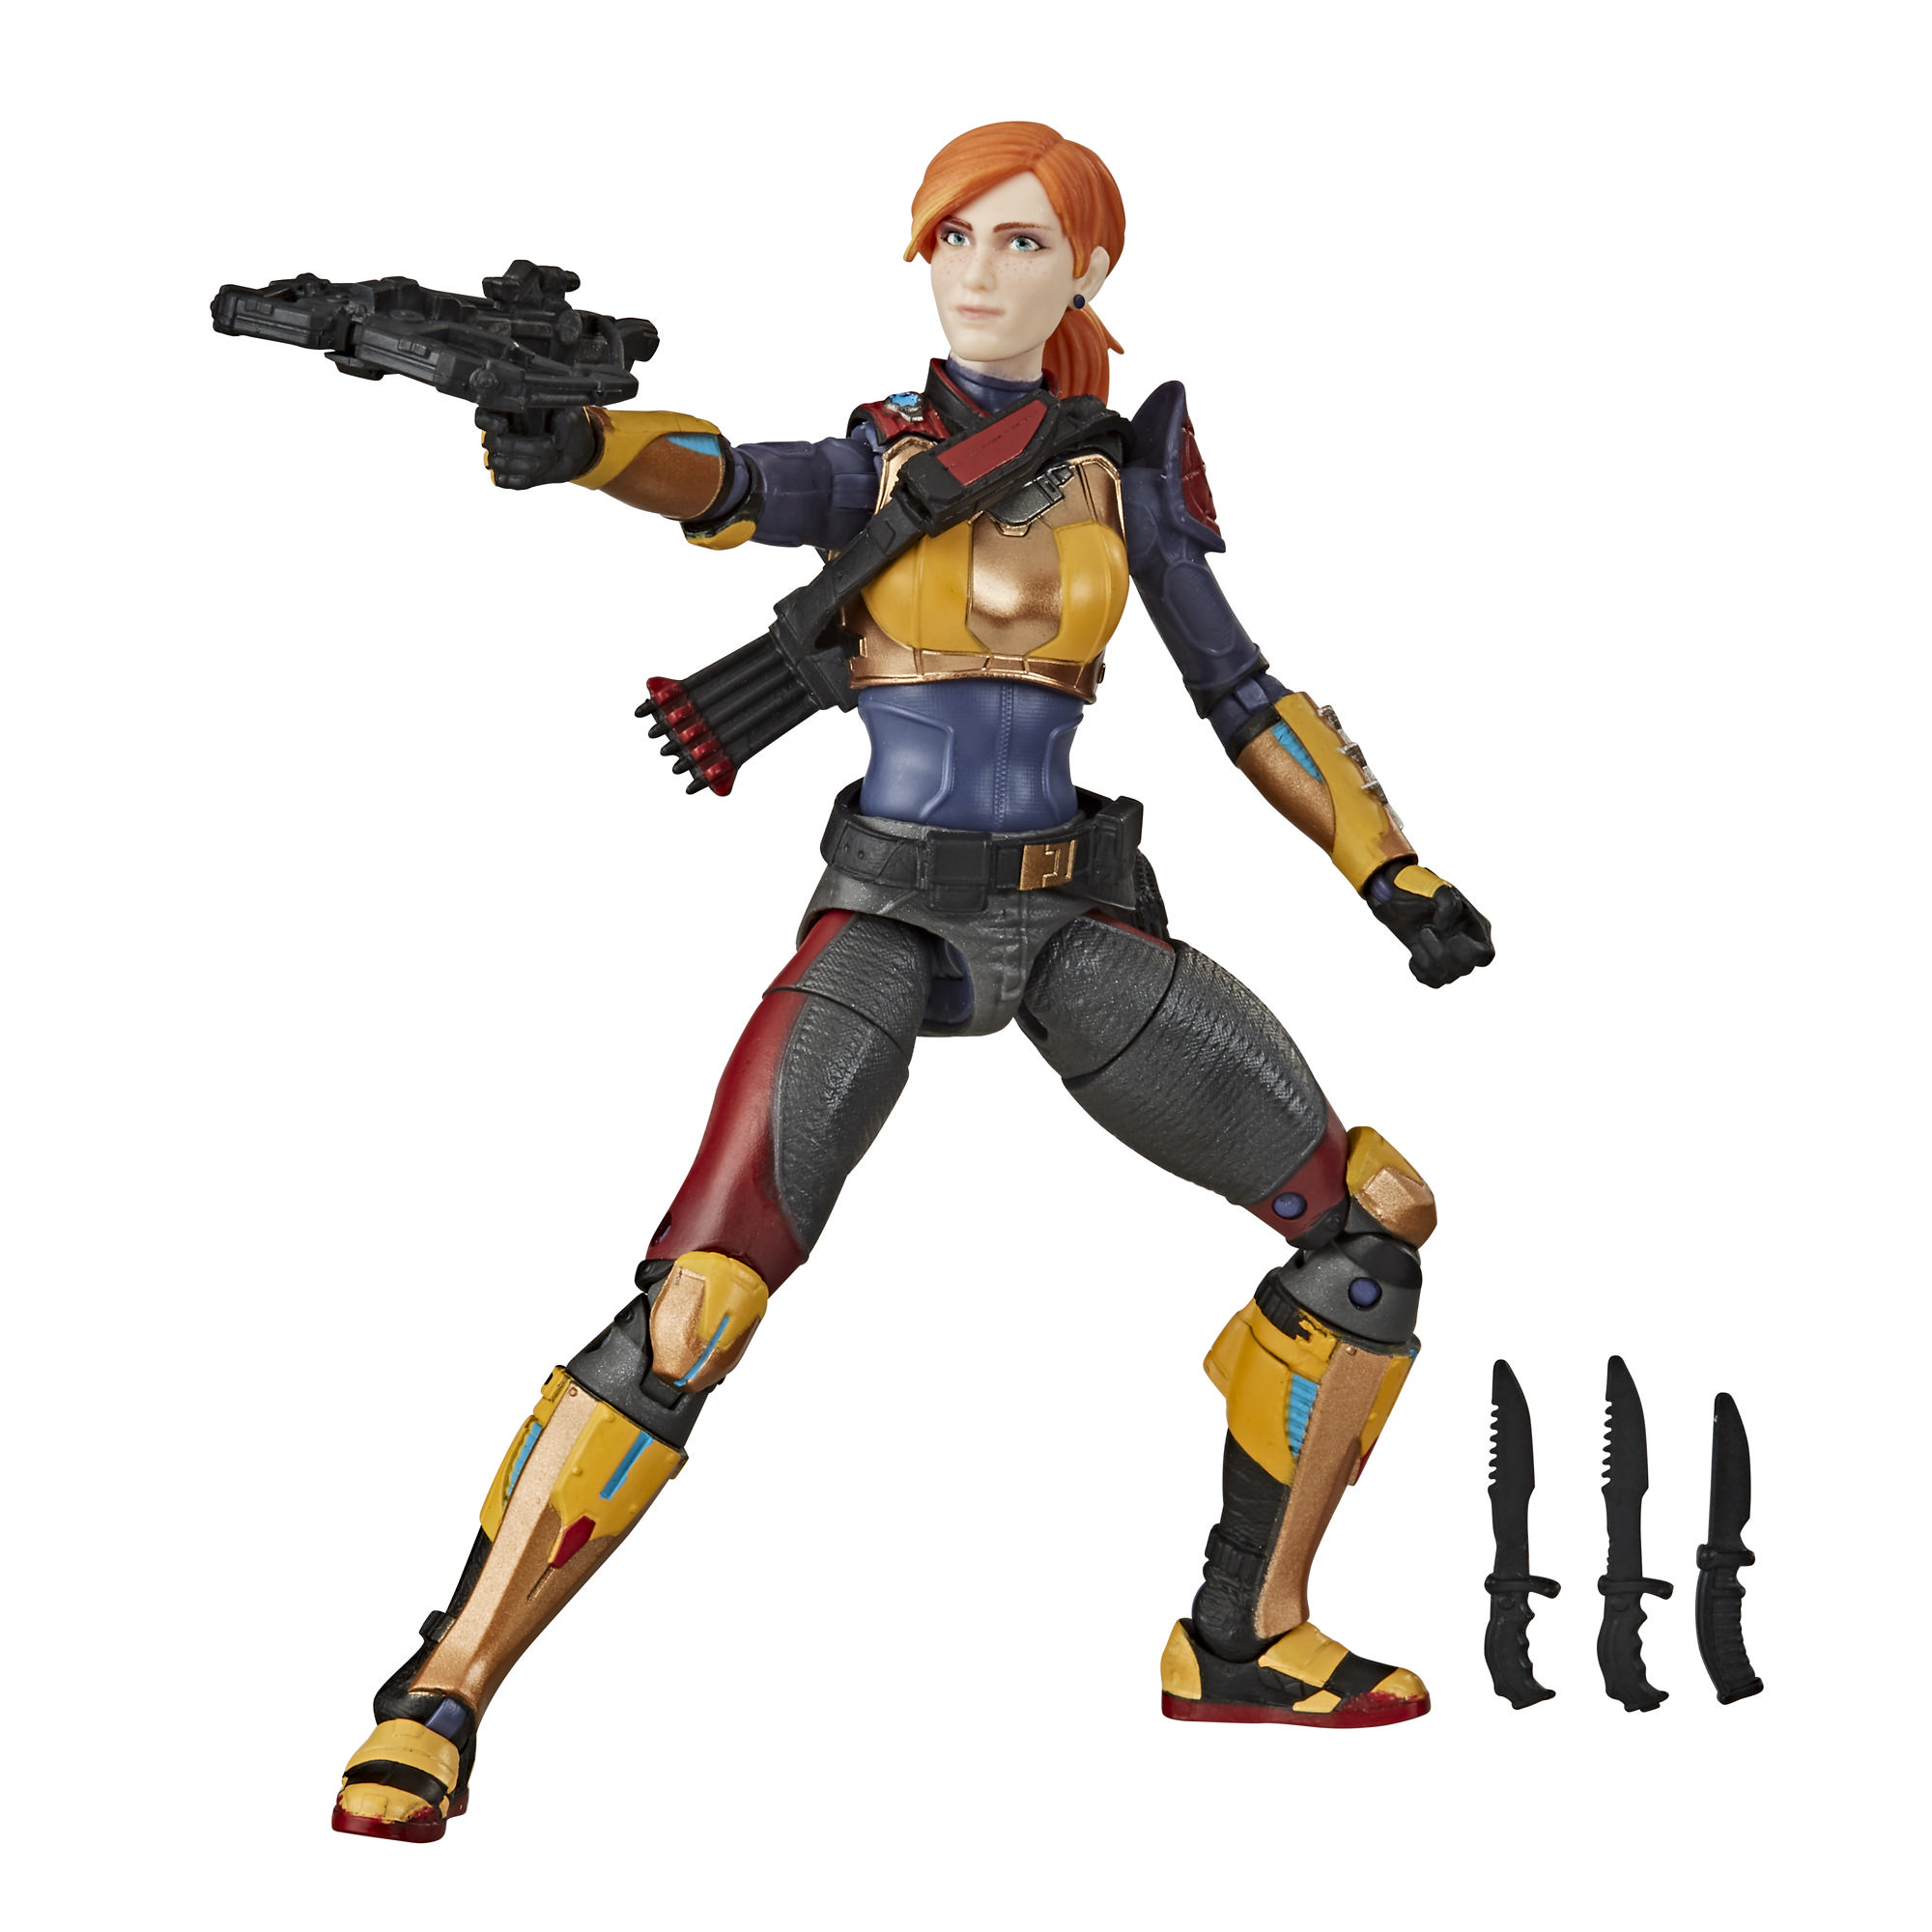 G.I. Joe Classified Series Scarlett Action Figure Collectible 05 Toy with Multiple Accessories